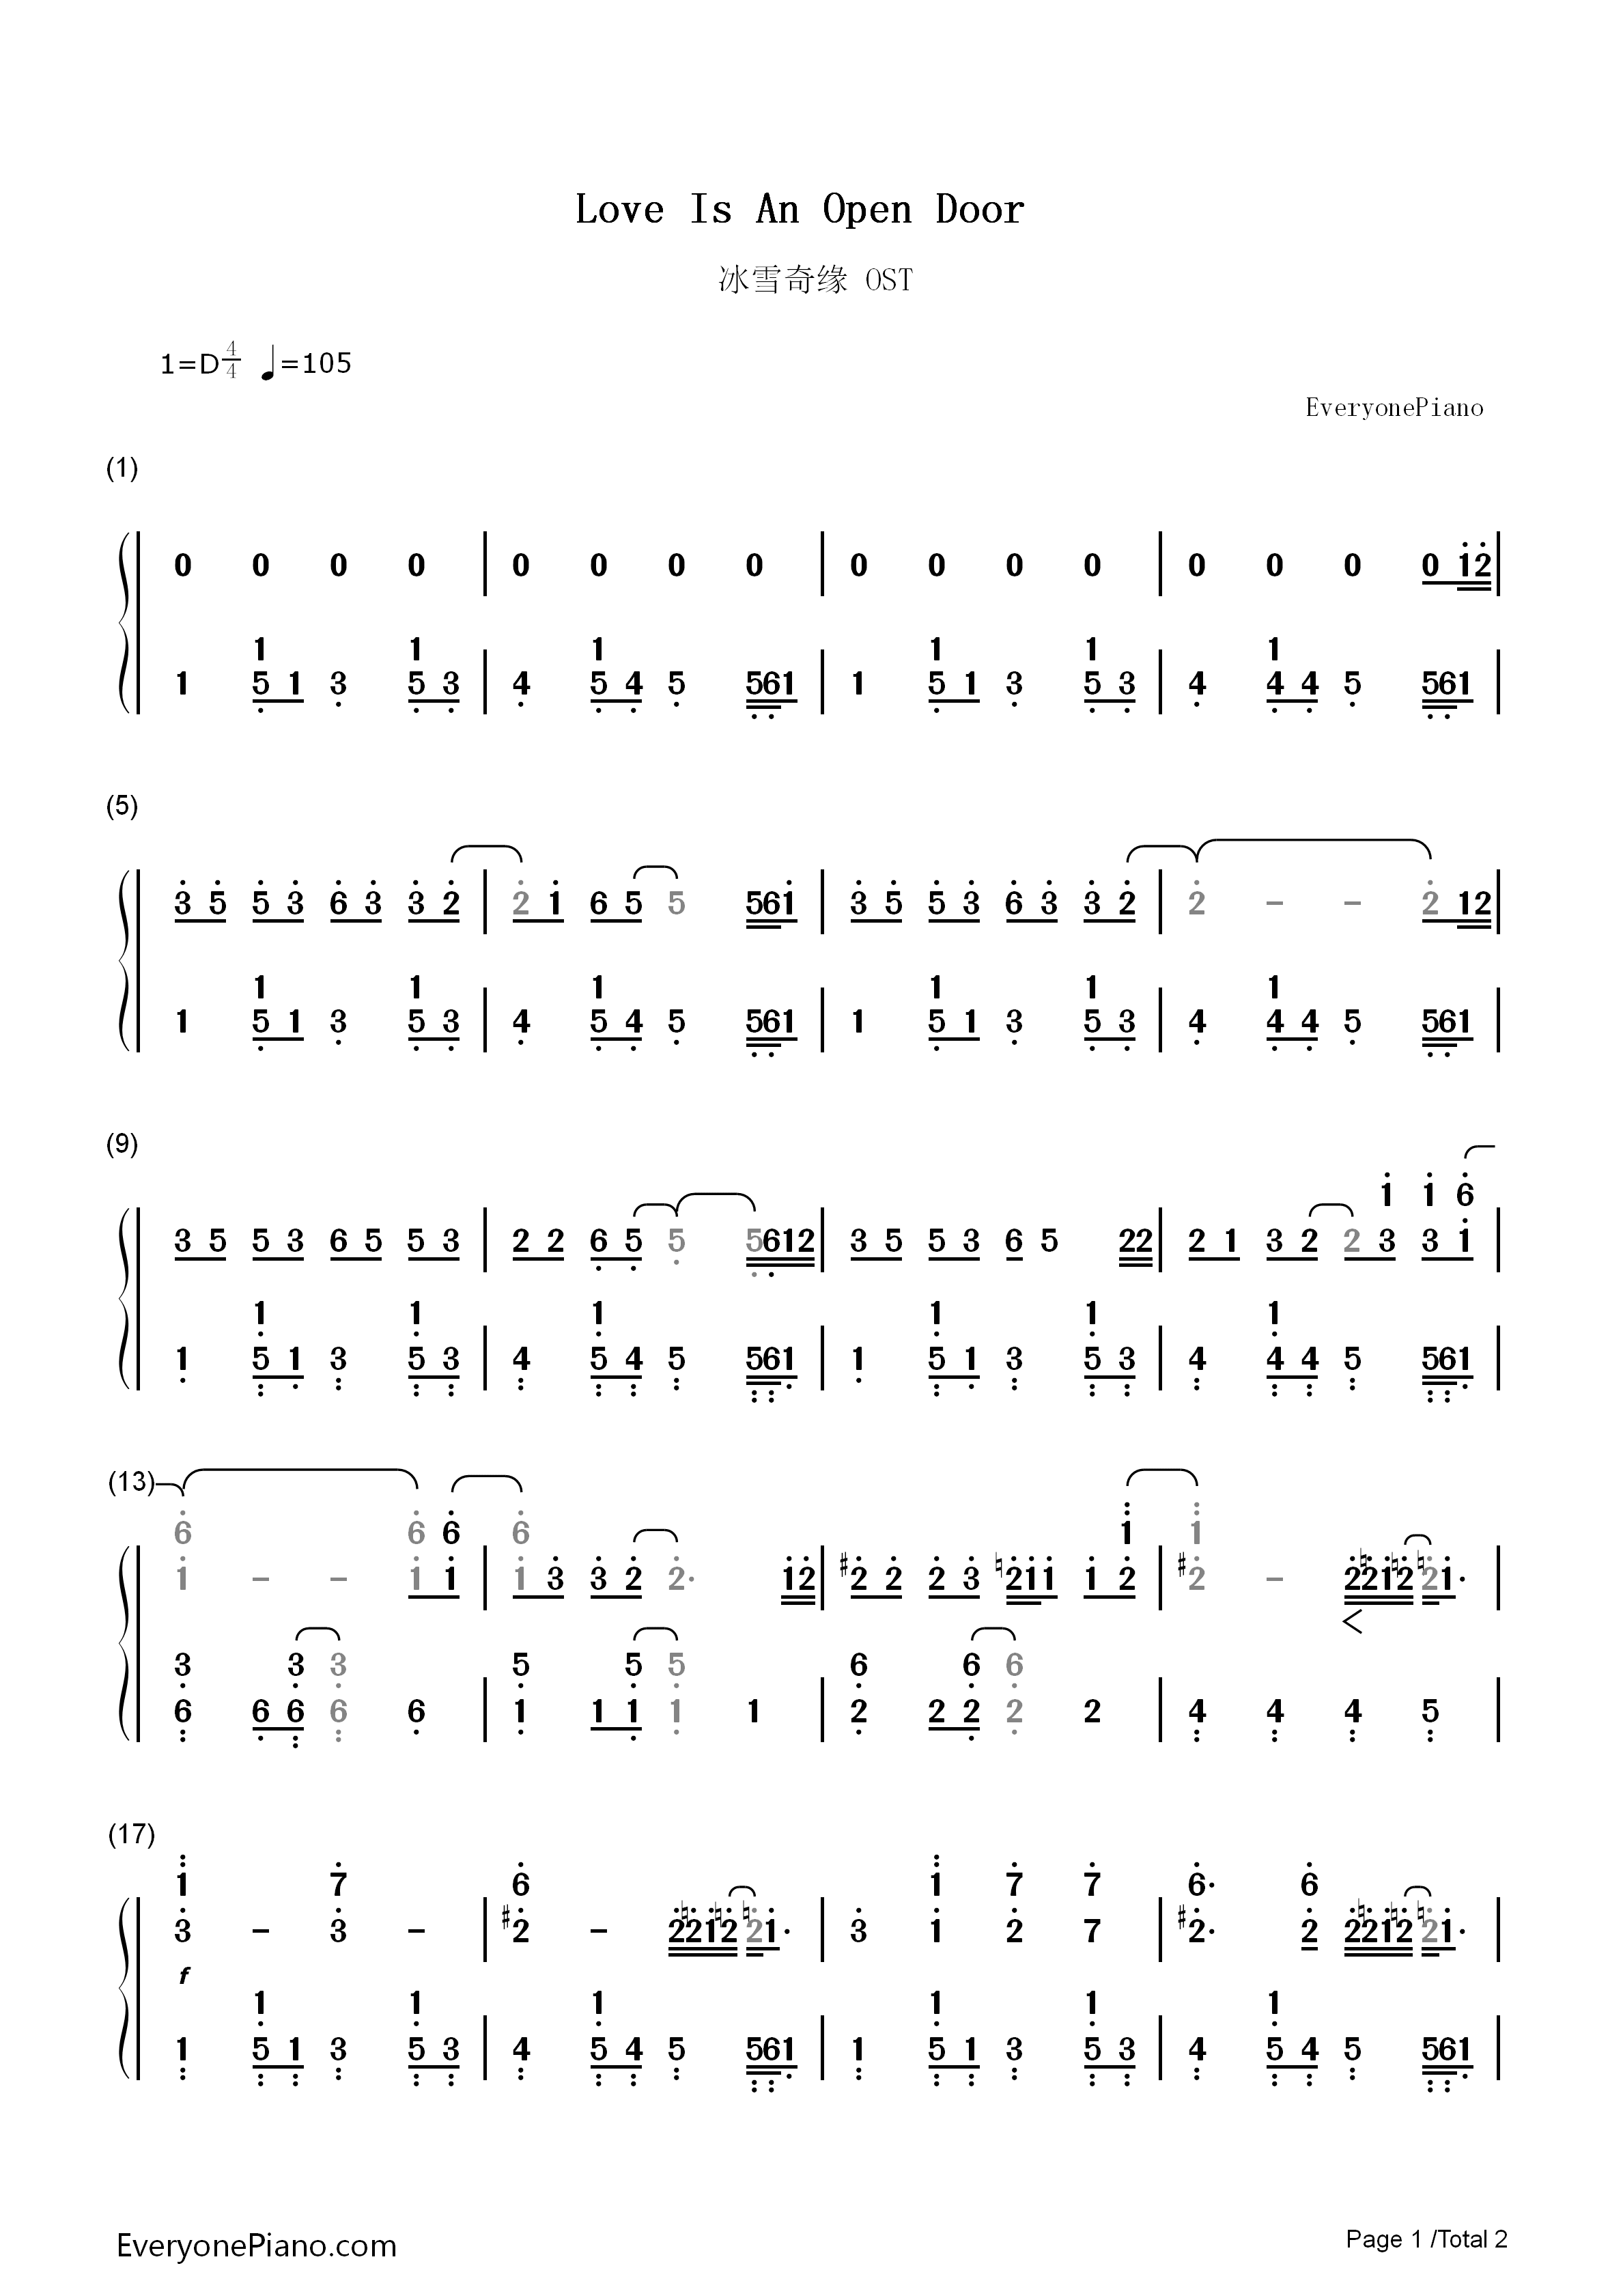 Love Is An Open Door Frozen OST Numbered Musical Notation Preview